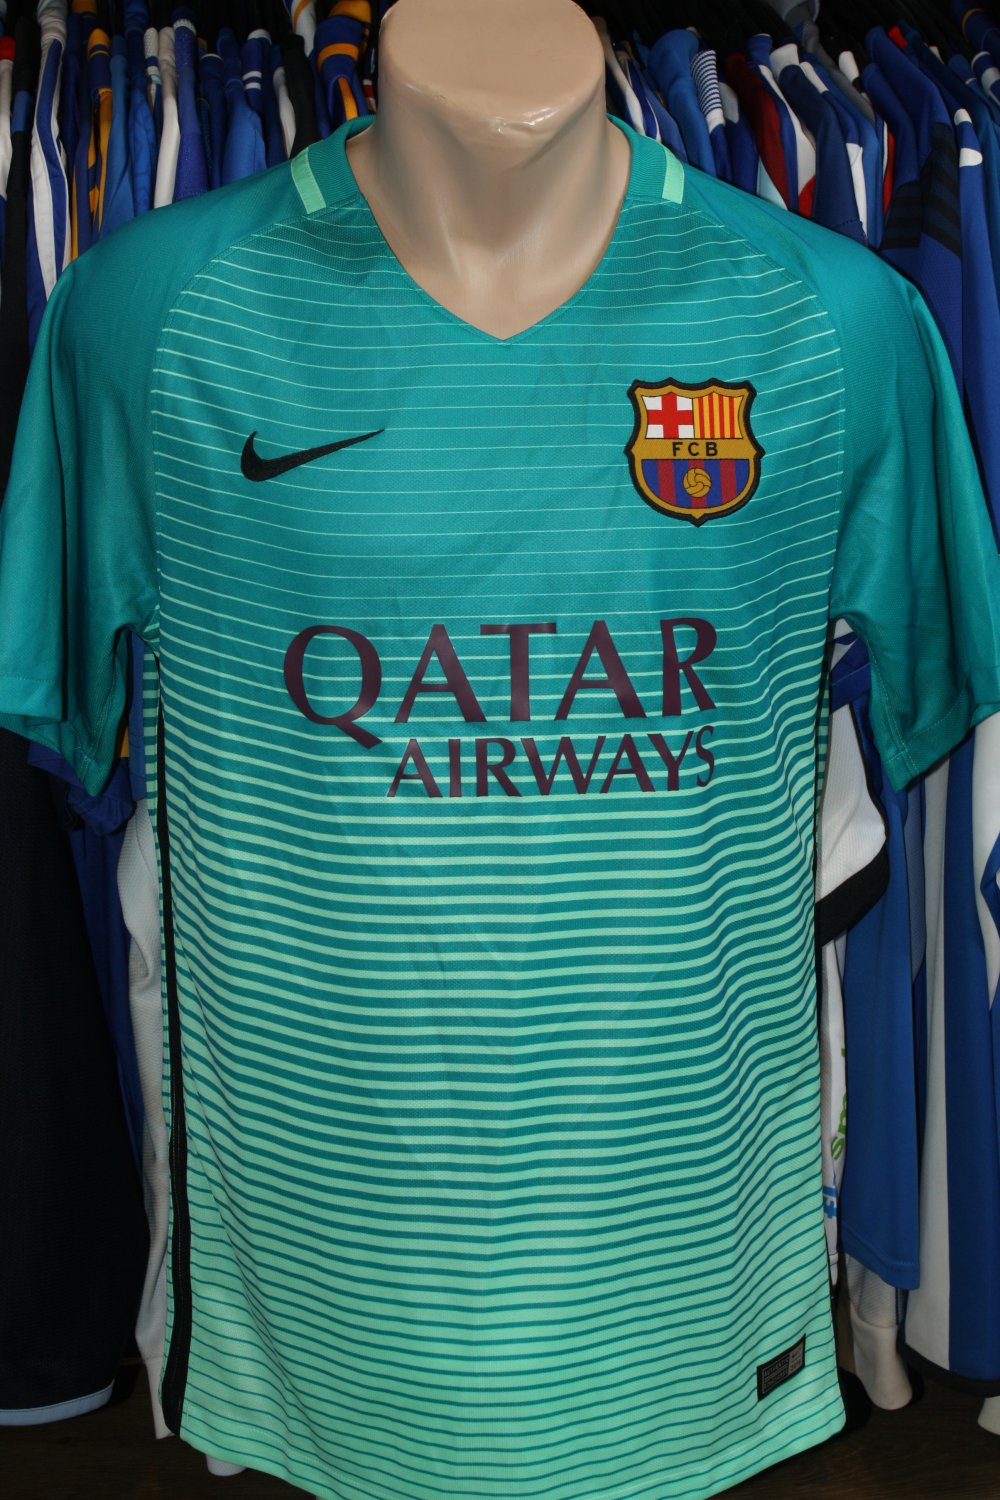 Barcelona Third Football Shirt 2016 2017 Sponsored By Qatar Airways